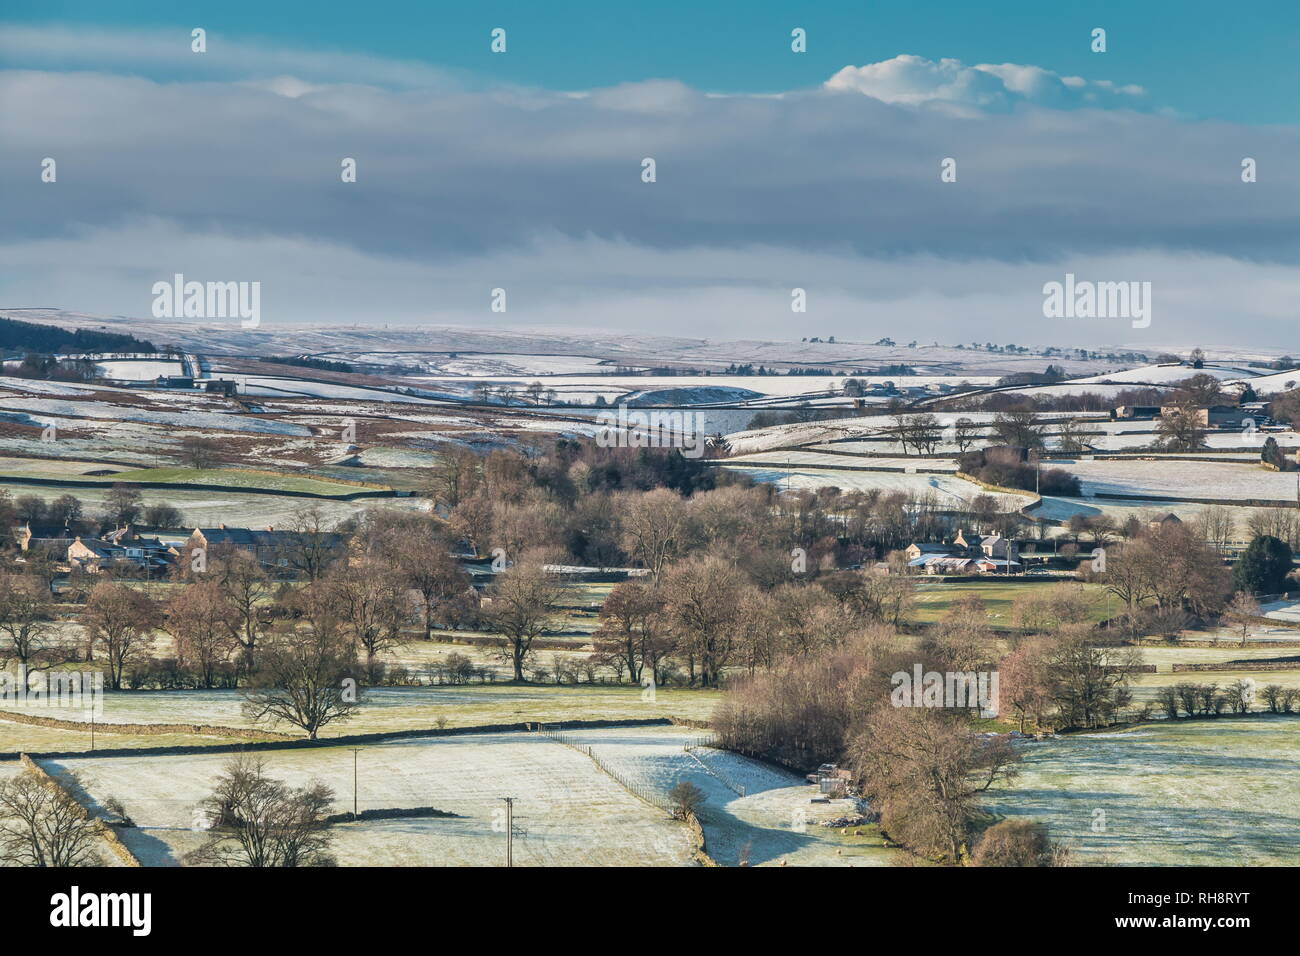 North Pennines AONB landscape, view from Whistle Crag over Teesdale into Lunedale with snow covered hills in the distance in bright winter sunshine Stock Photo